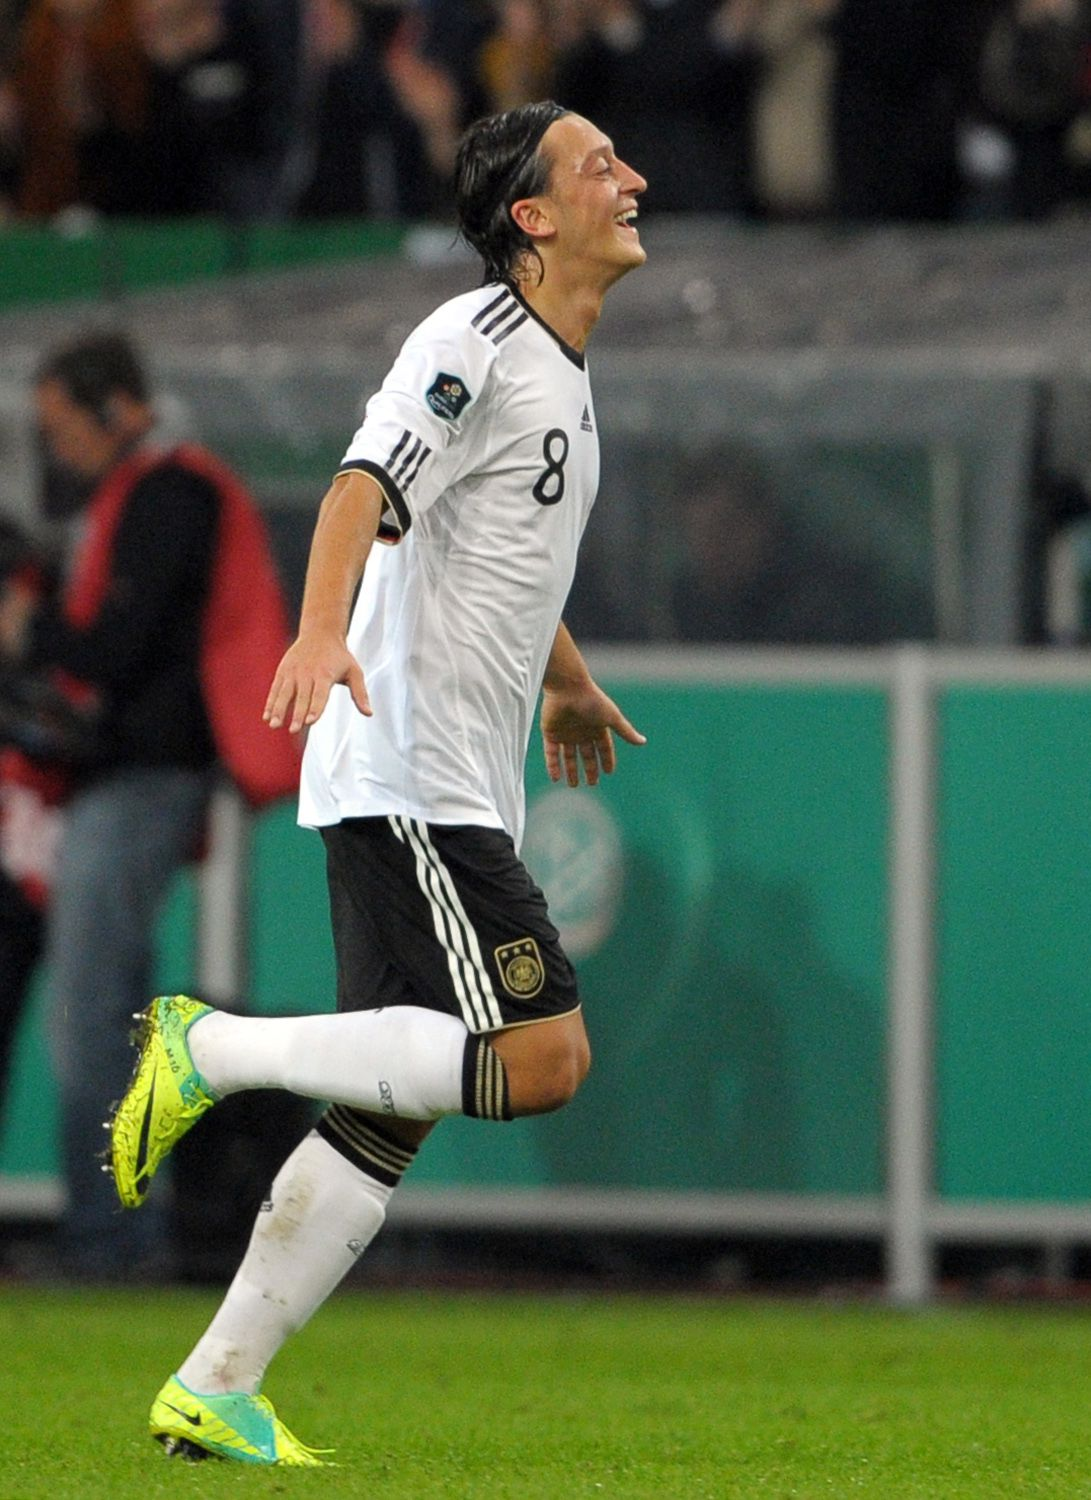 Germany's midfielder Mesut Oezil celebrates after scoring the first goal during the UEFA Euro 2012 qualifying match Germany vs Belgium on October 11, 2011 in Duesseldorf. Germany won 3-0. AFP PHOTO / JOHANNES EISELE